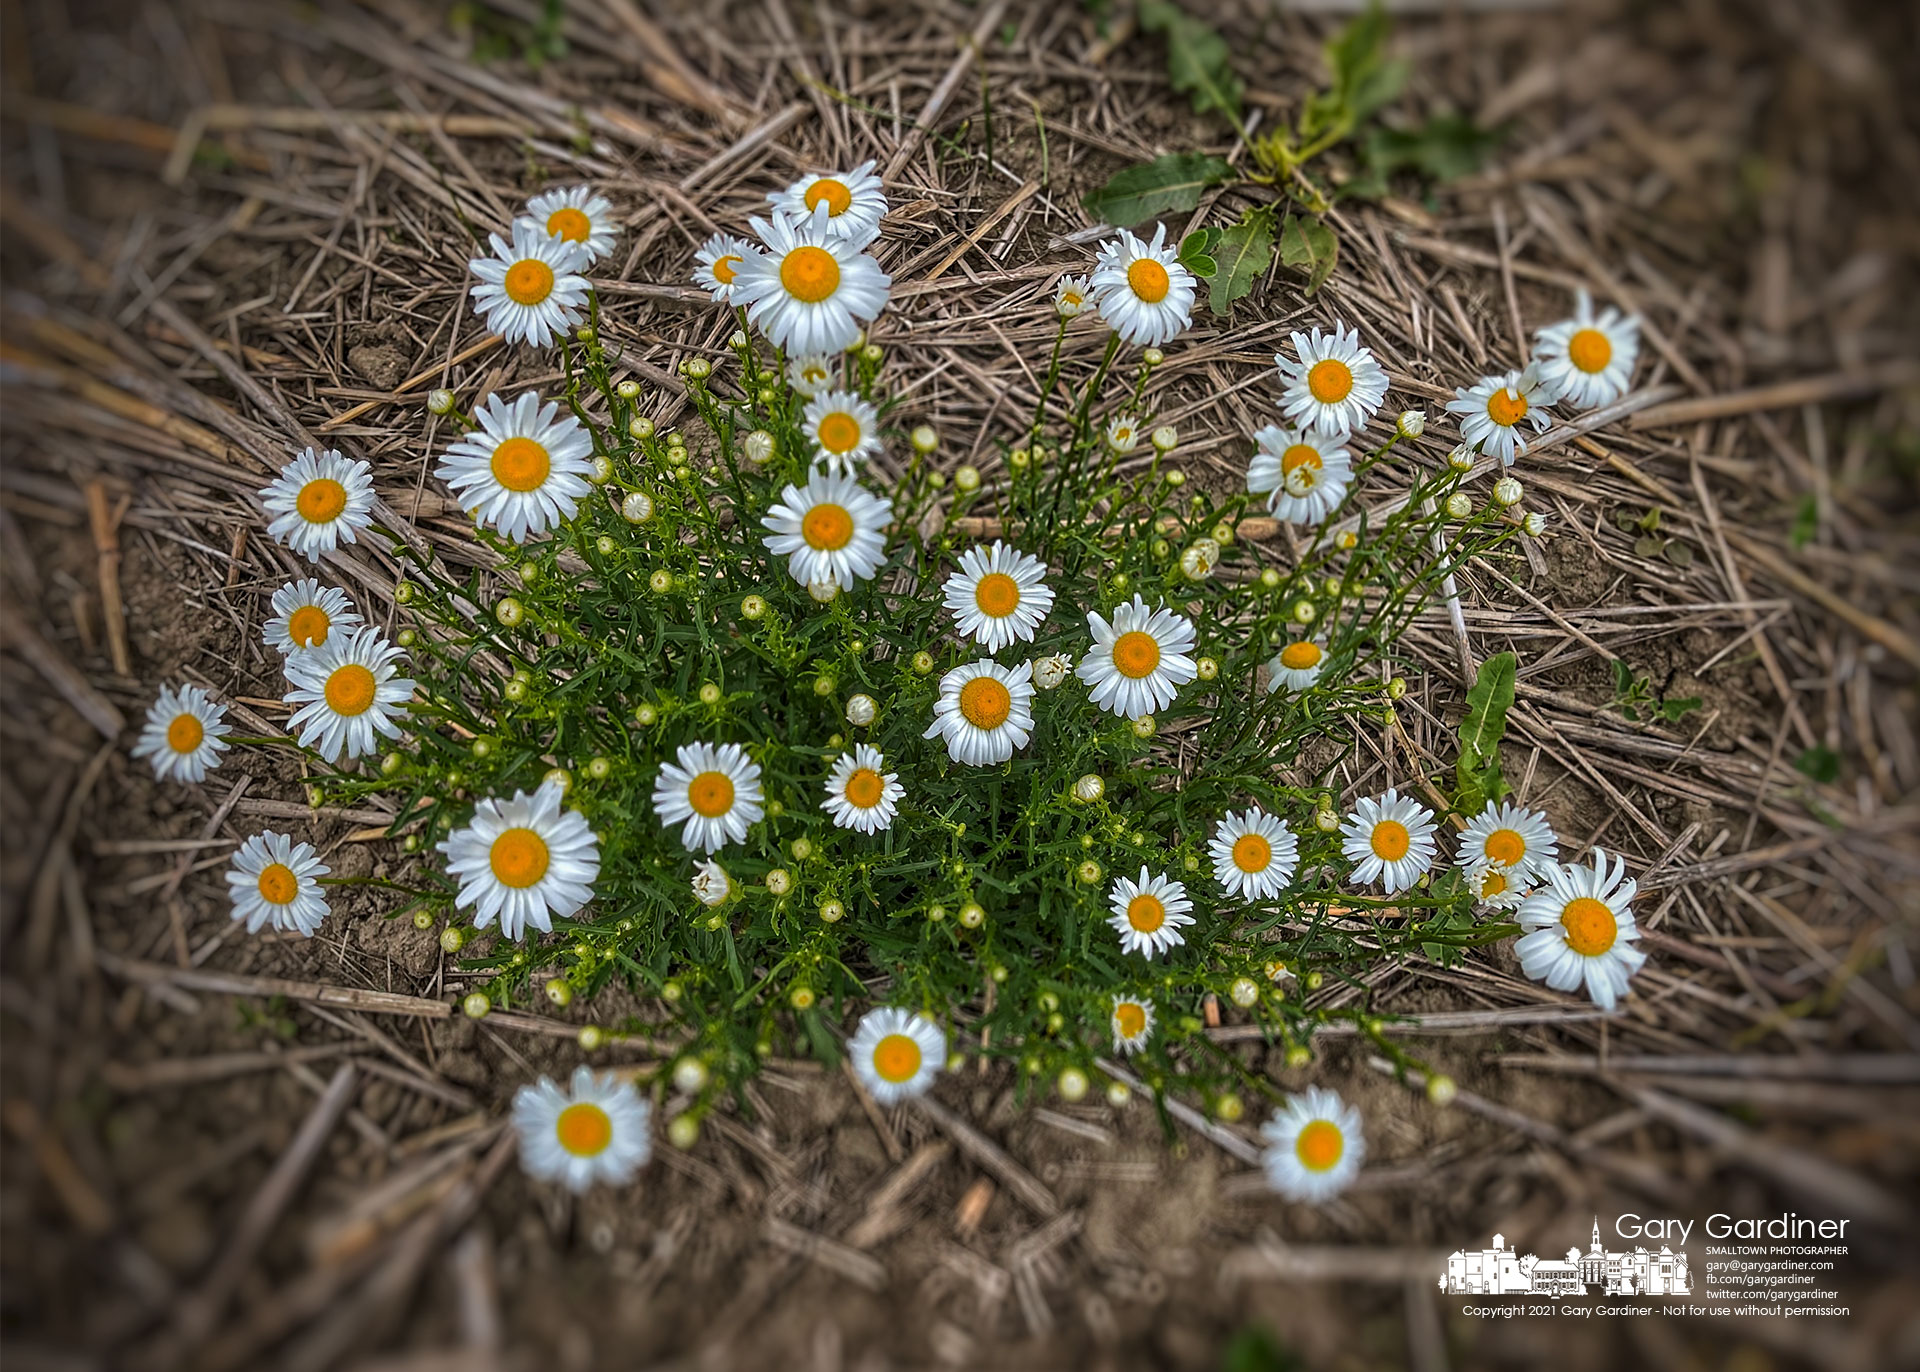 A blooming Oxeye daisy plant stands out against the dried soil and detritus of the lower field on the Braun Farm where the noxious plant shows itself every spring. My Final Photo for June 1, 2021.